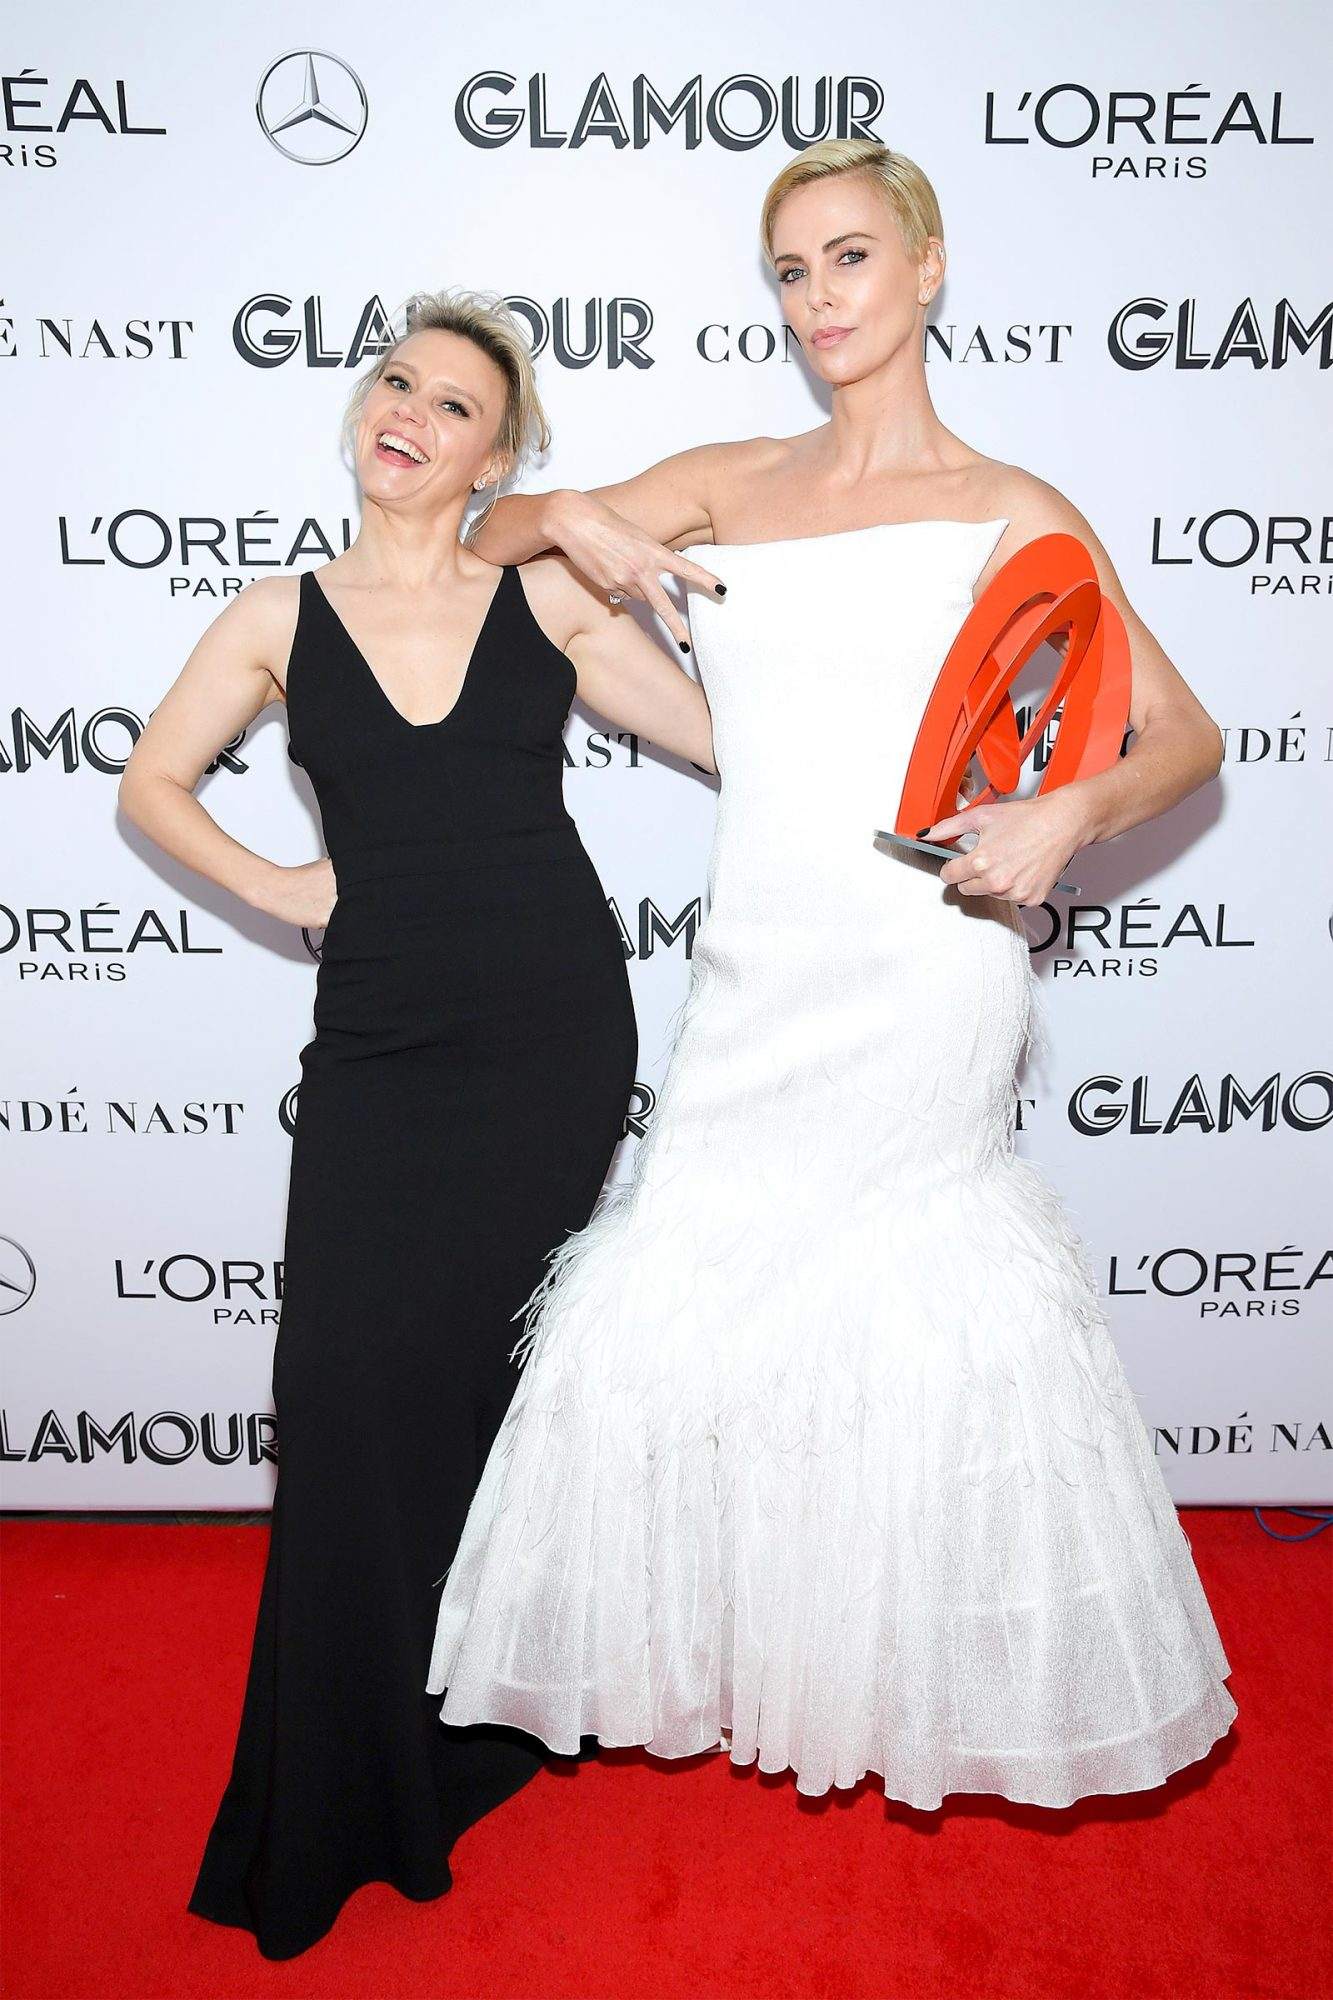 Kate McKinnon and Charlize Theron